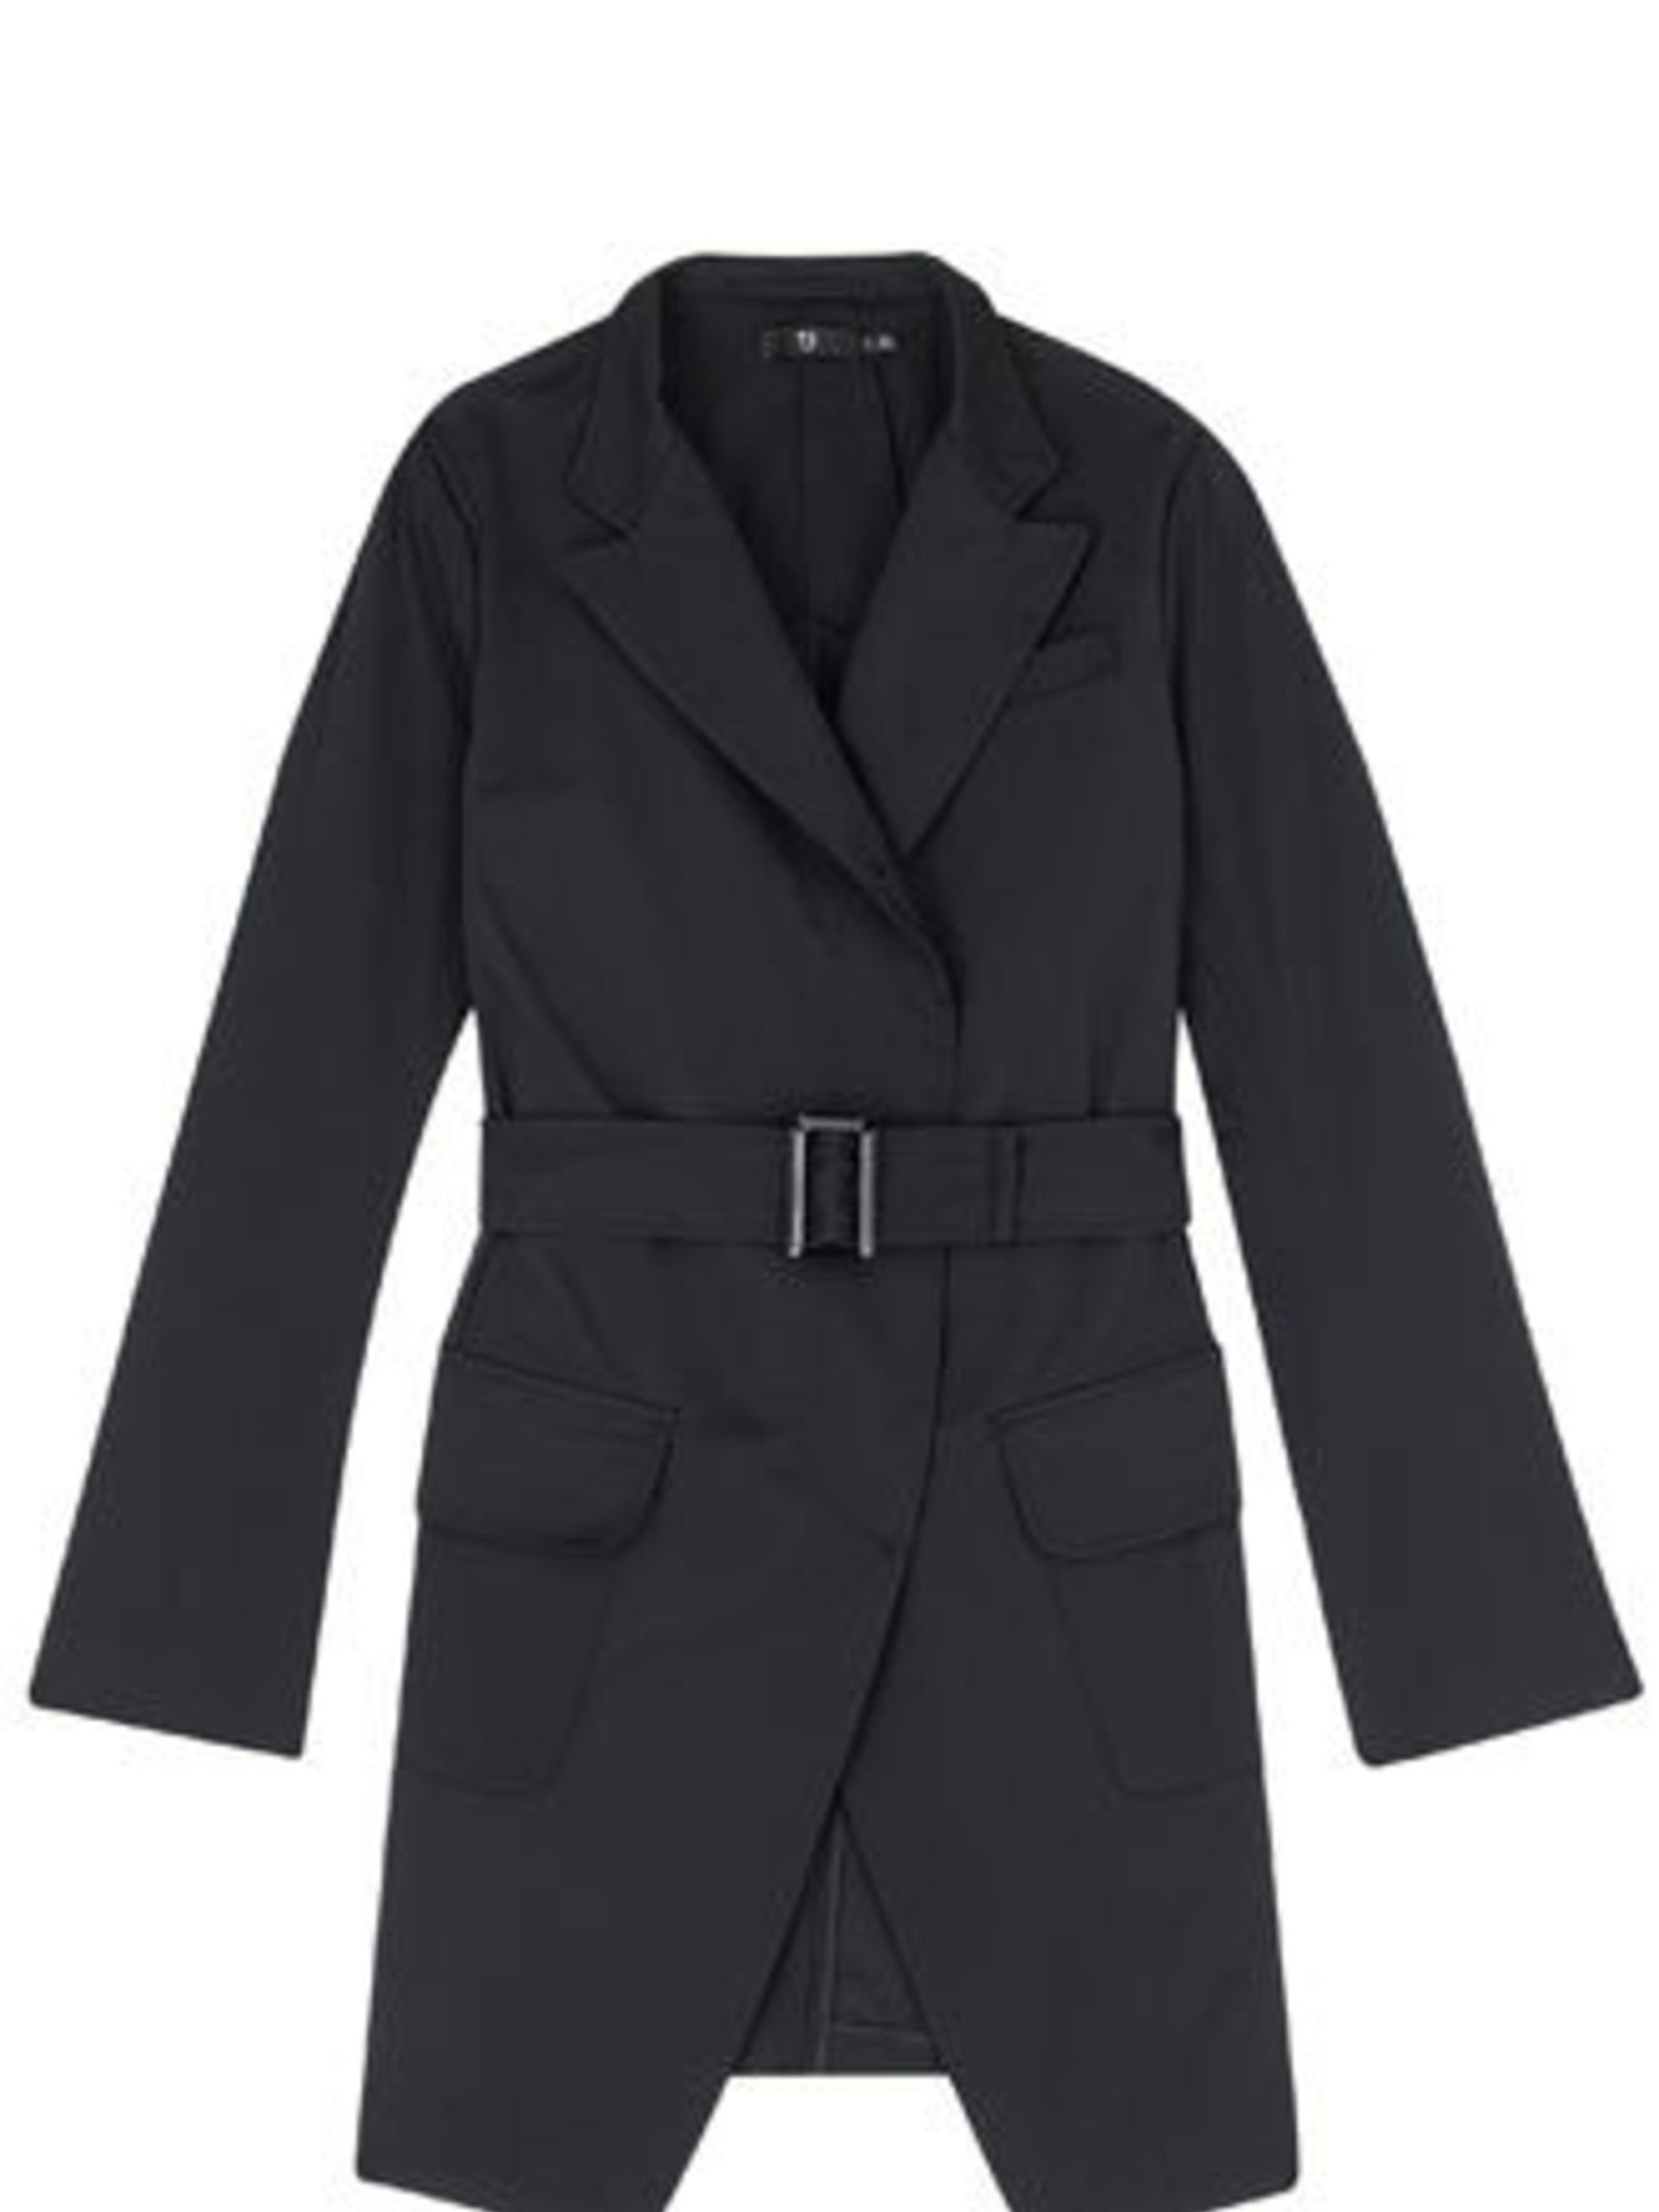 "<p>This coat from Uniqlo, hitting stores Thursday, is a great way to buy into the Jil Sander brand without breaking the bank. It's chic, practical and will go with everything – what more could a girl want? </p><p>Coat, £99.99 by Jil Sander at <a href=""htt"